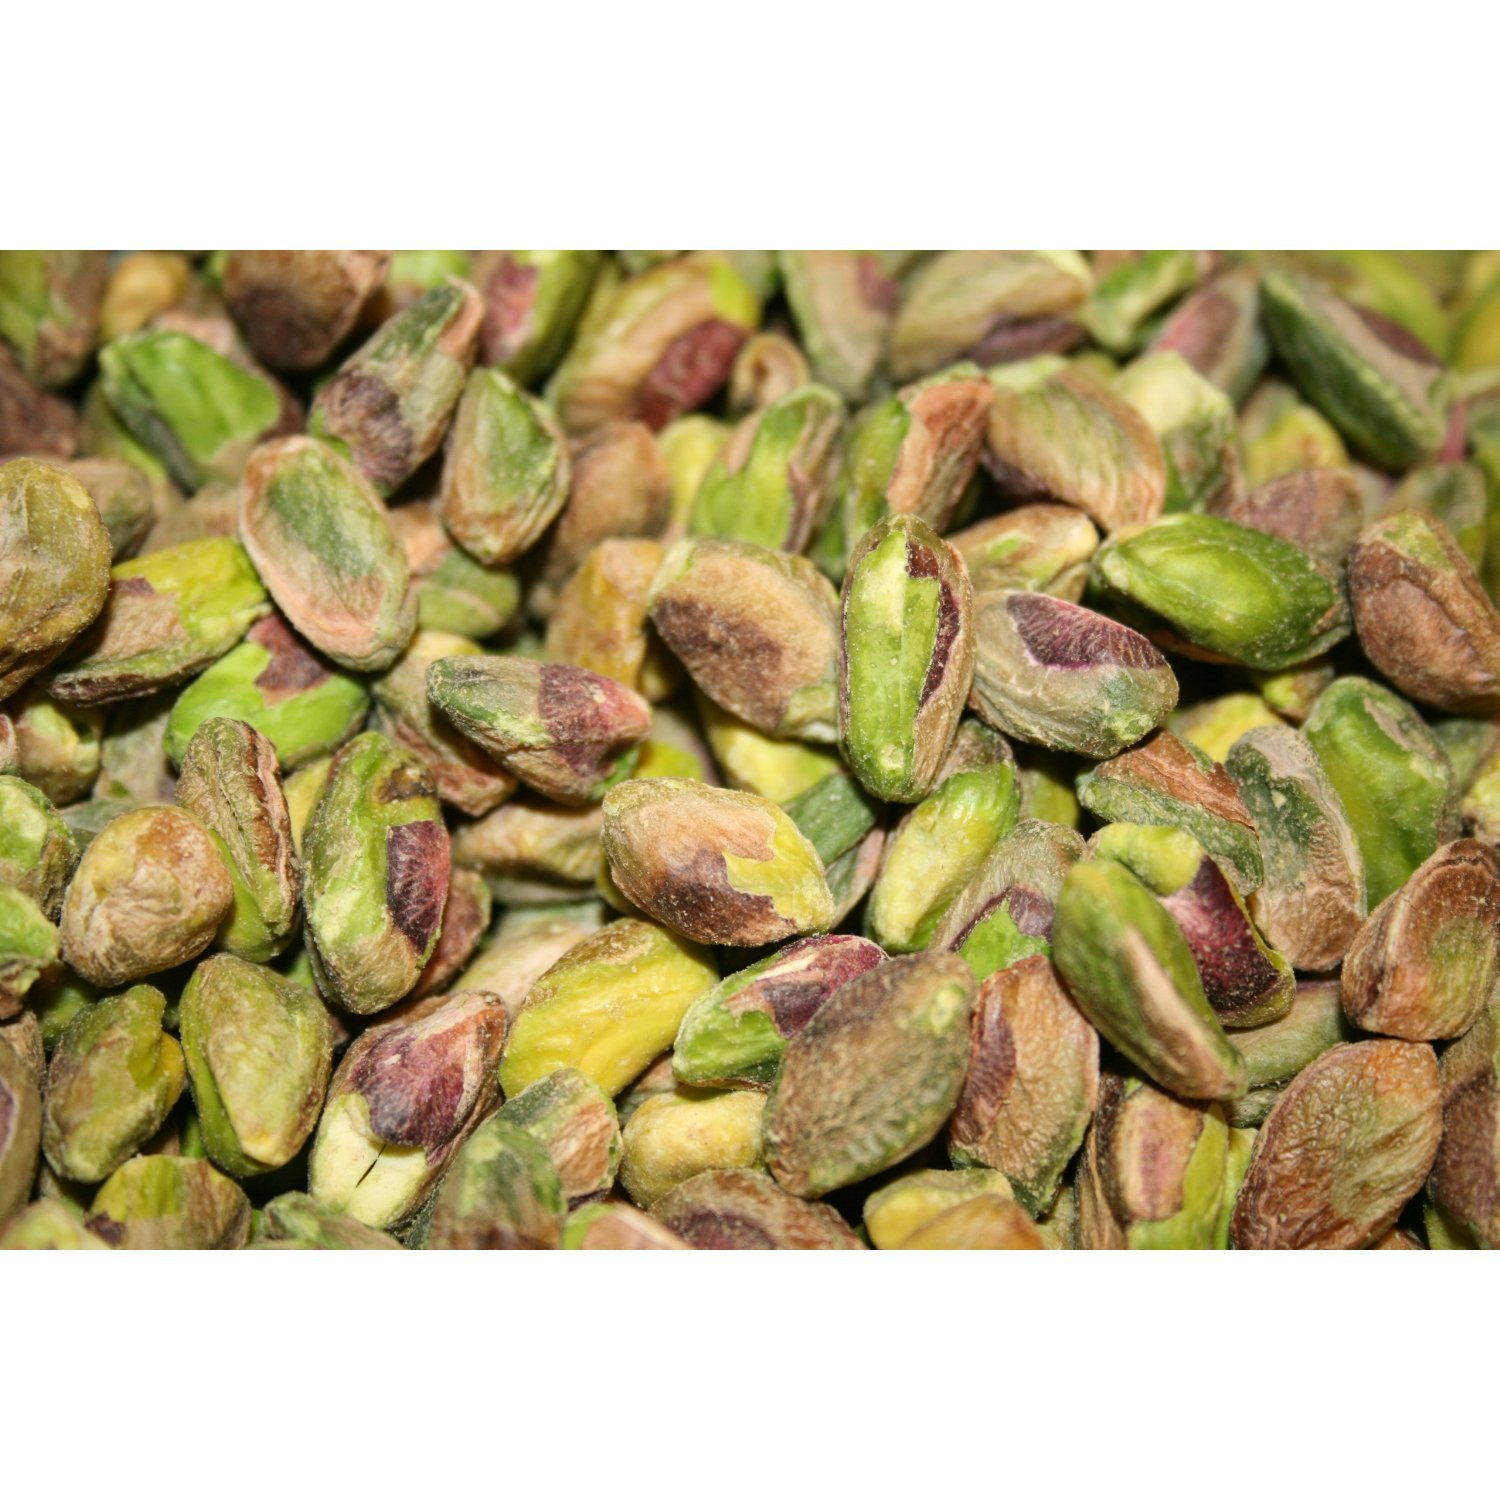 Raw Shelled Pistachios, 5LBS